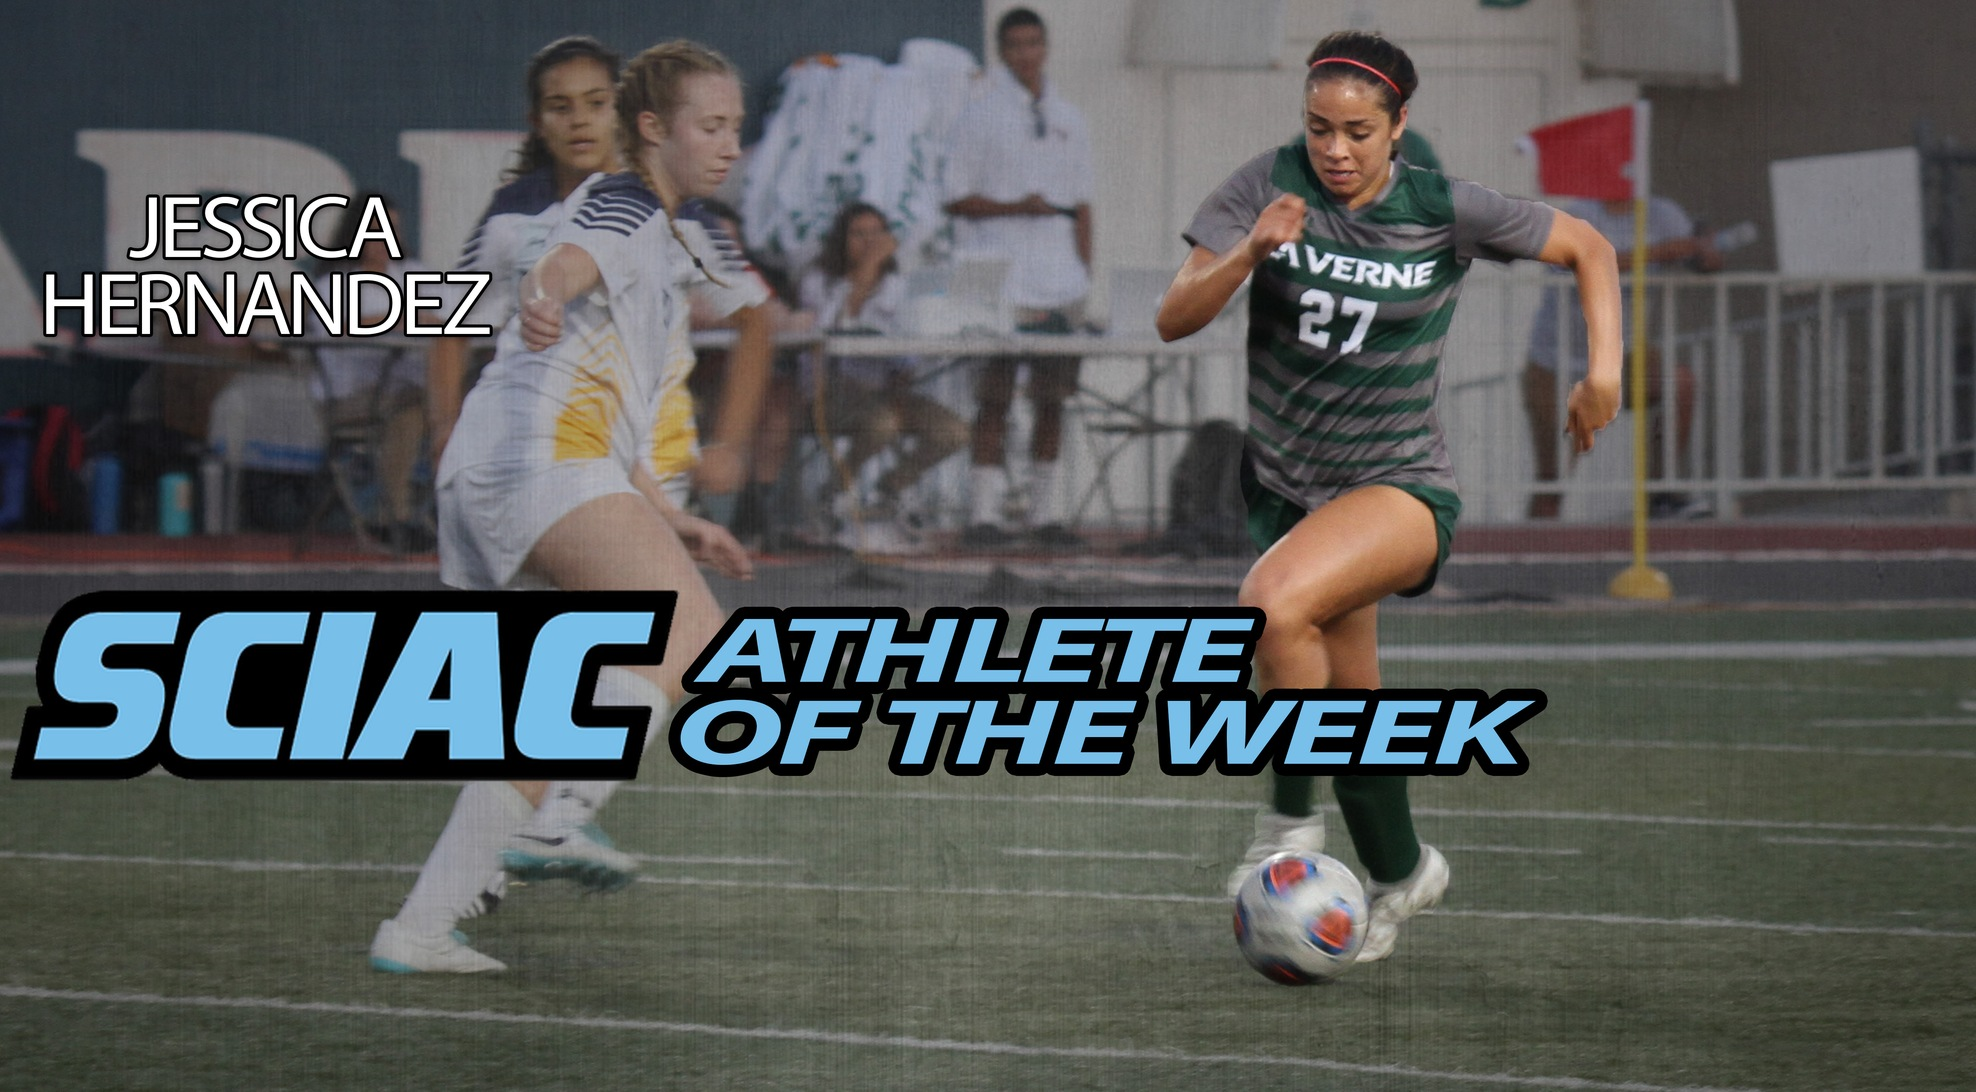 Jessica Hernandez named SCIAC Athlete of the Week